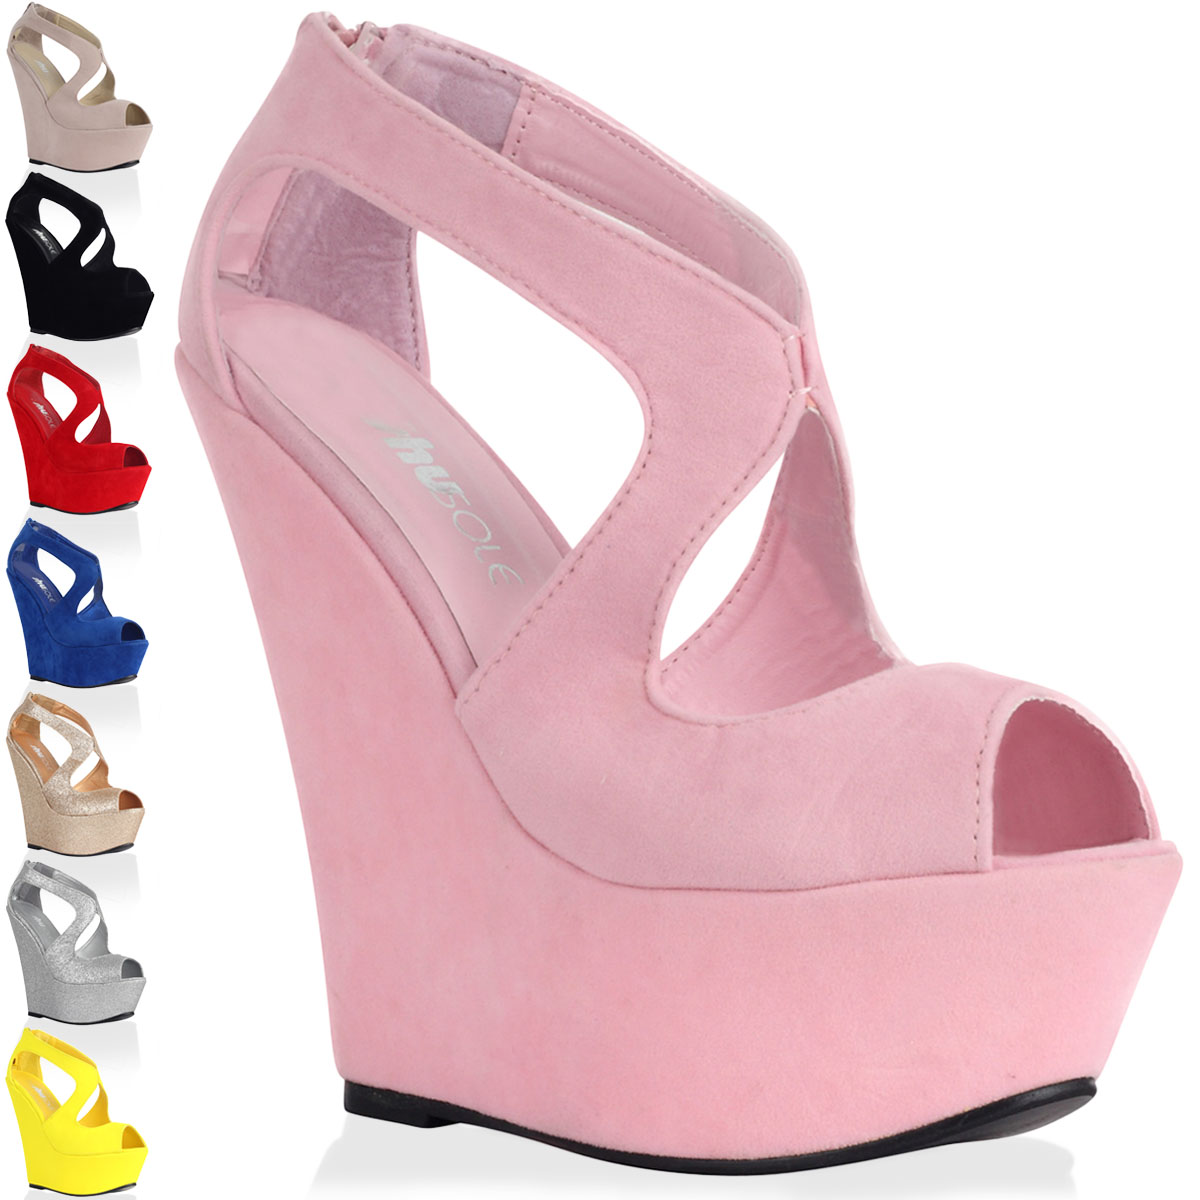 Ladies Wedge Heel Shoes